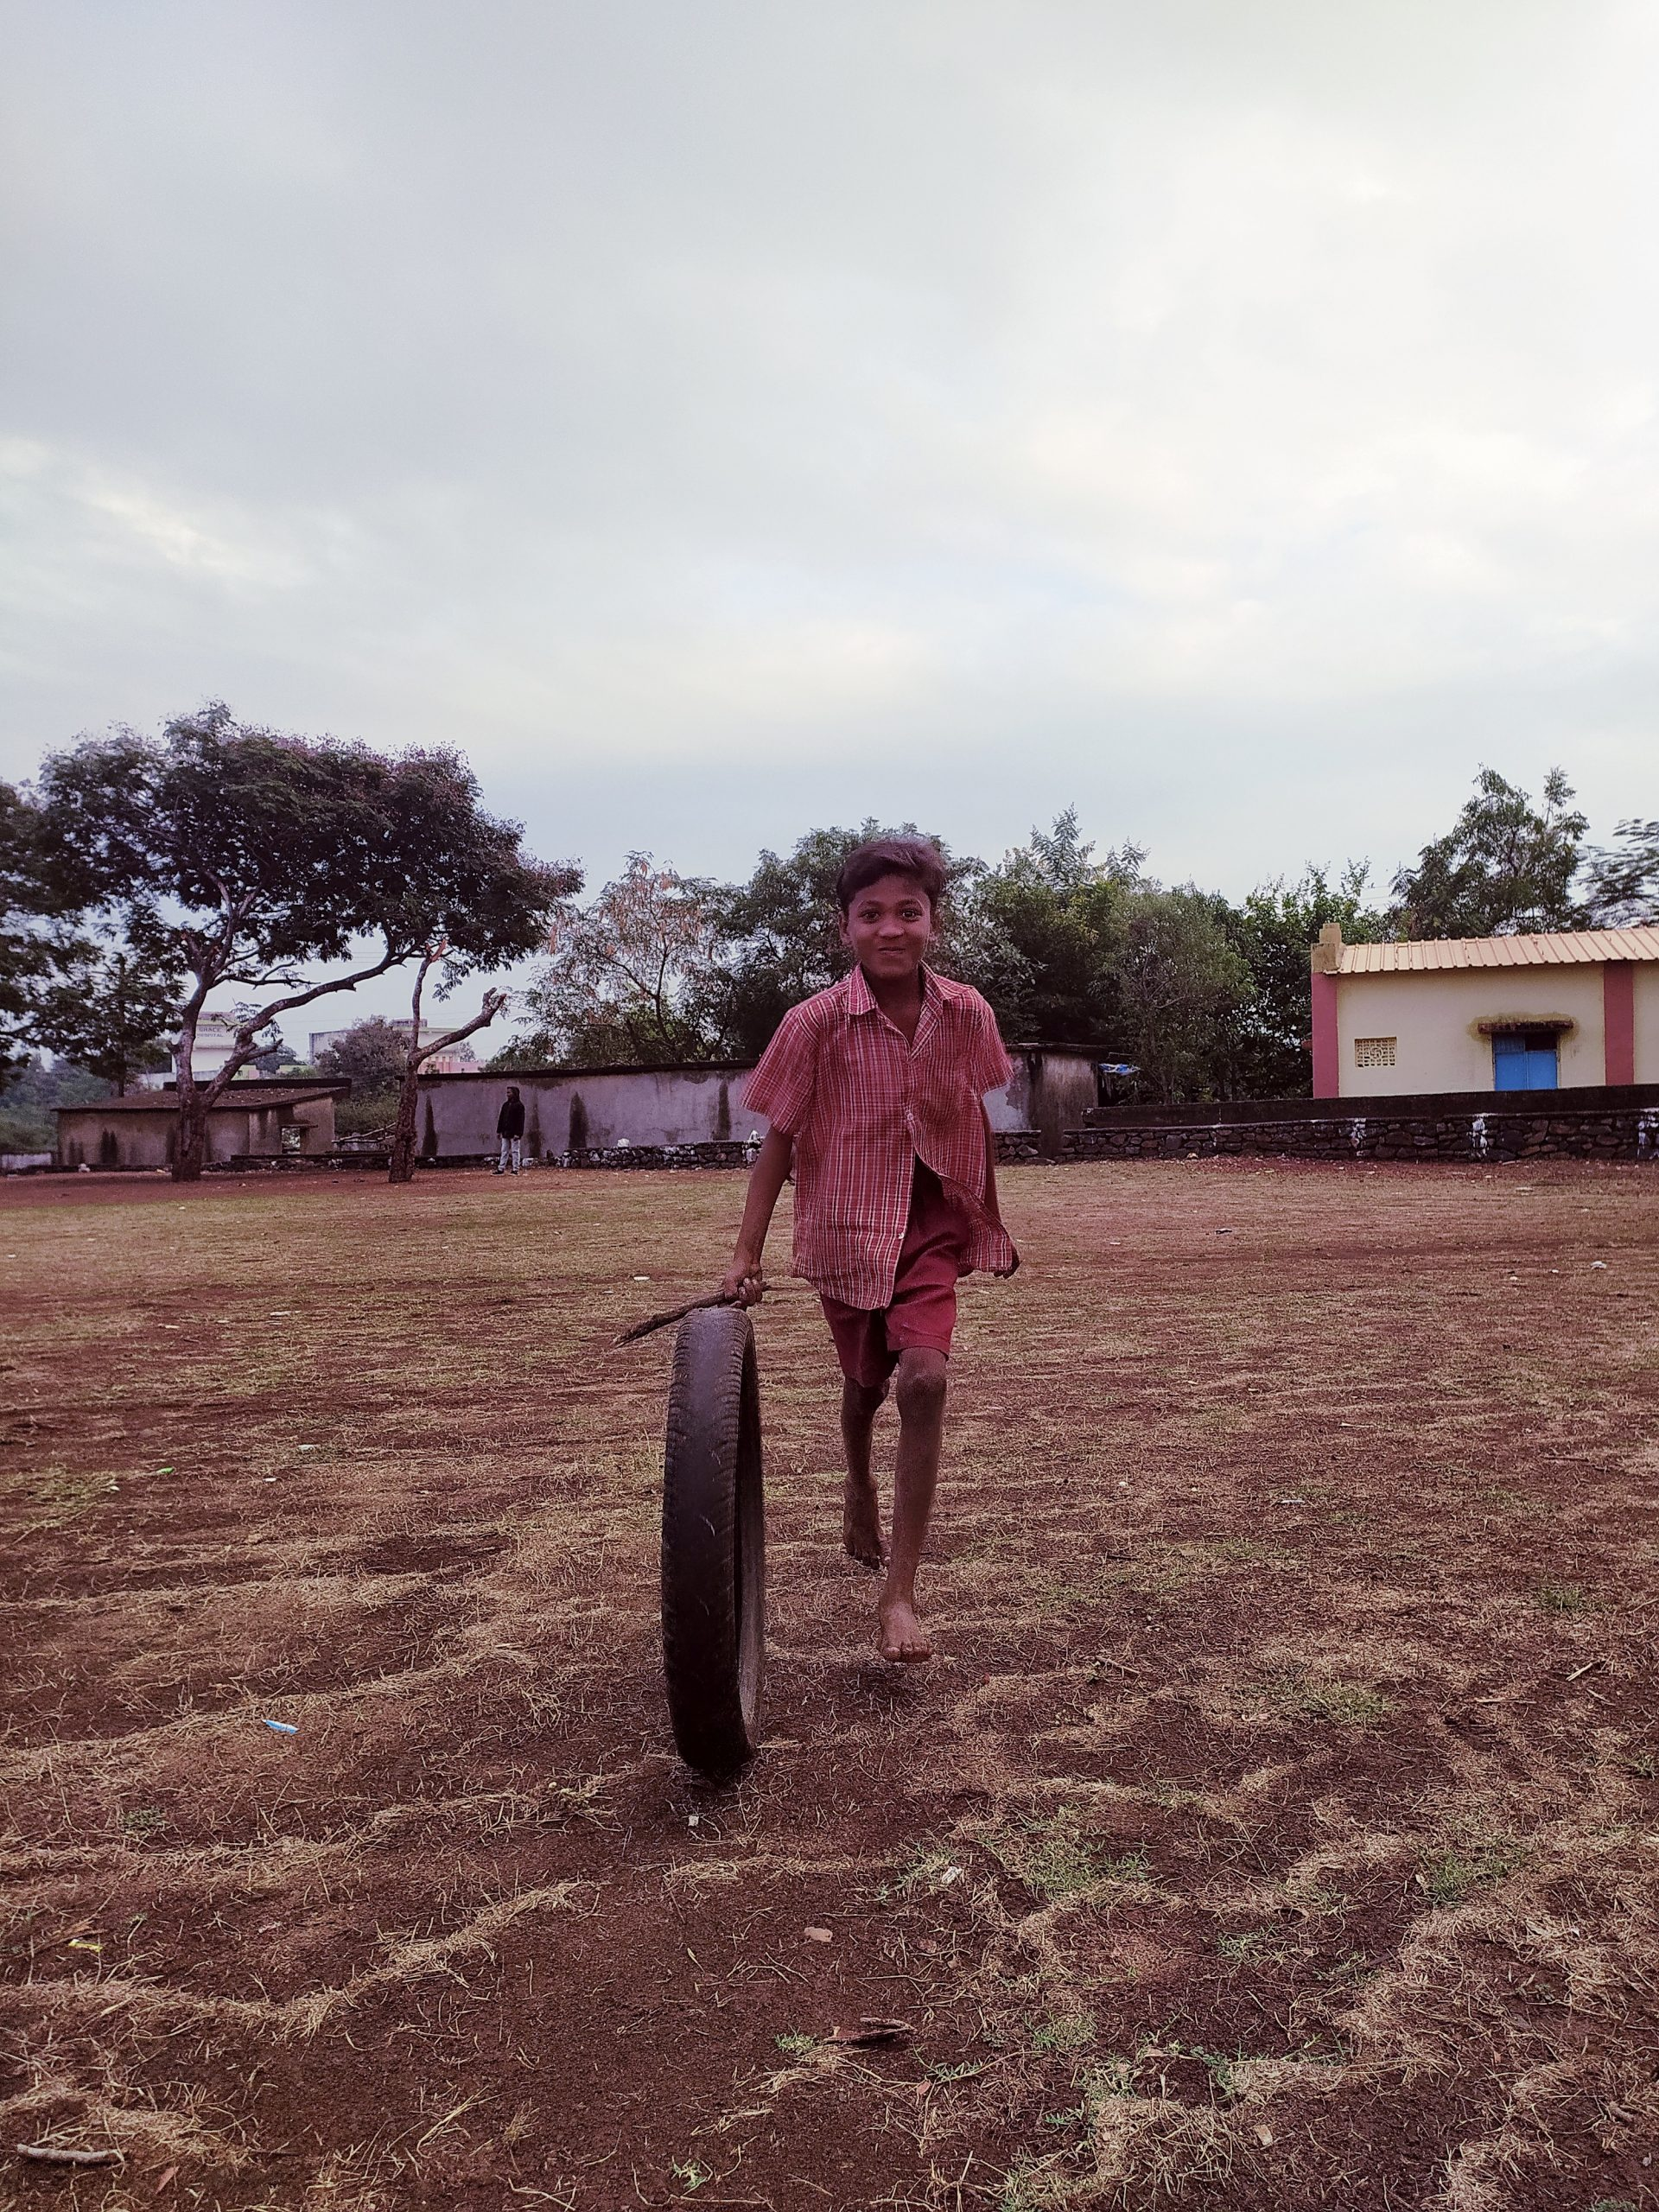 A village child playing with a tire